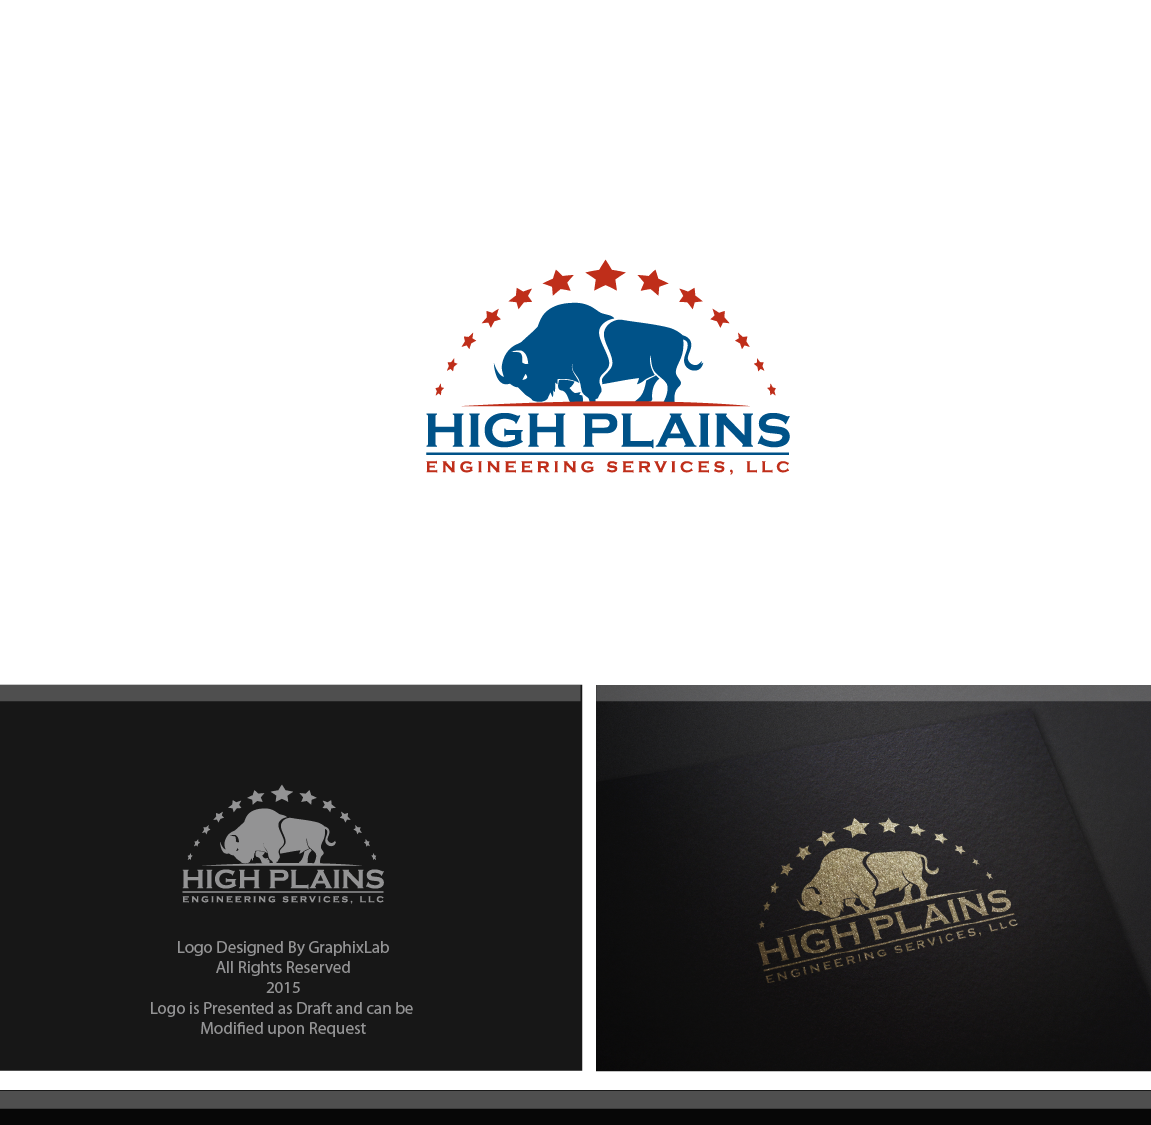 Serious Masculine Engineering Logo Design For High Plains Engineering Services Llc By Graphix Lab Design 5797199